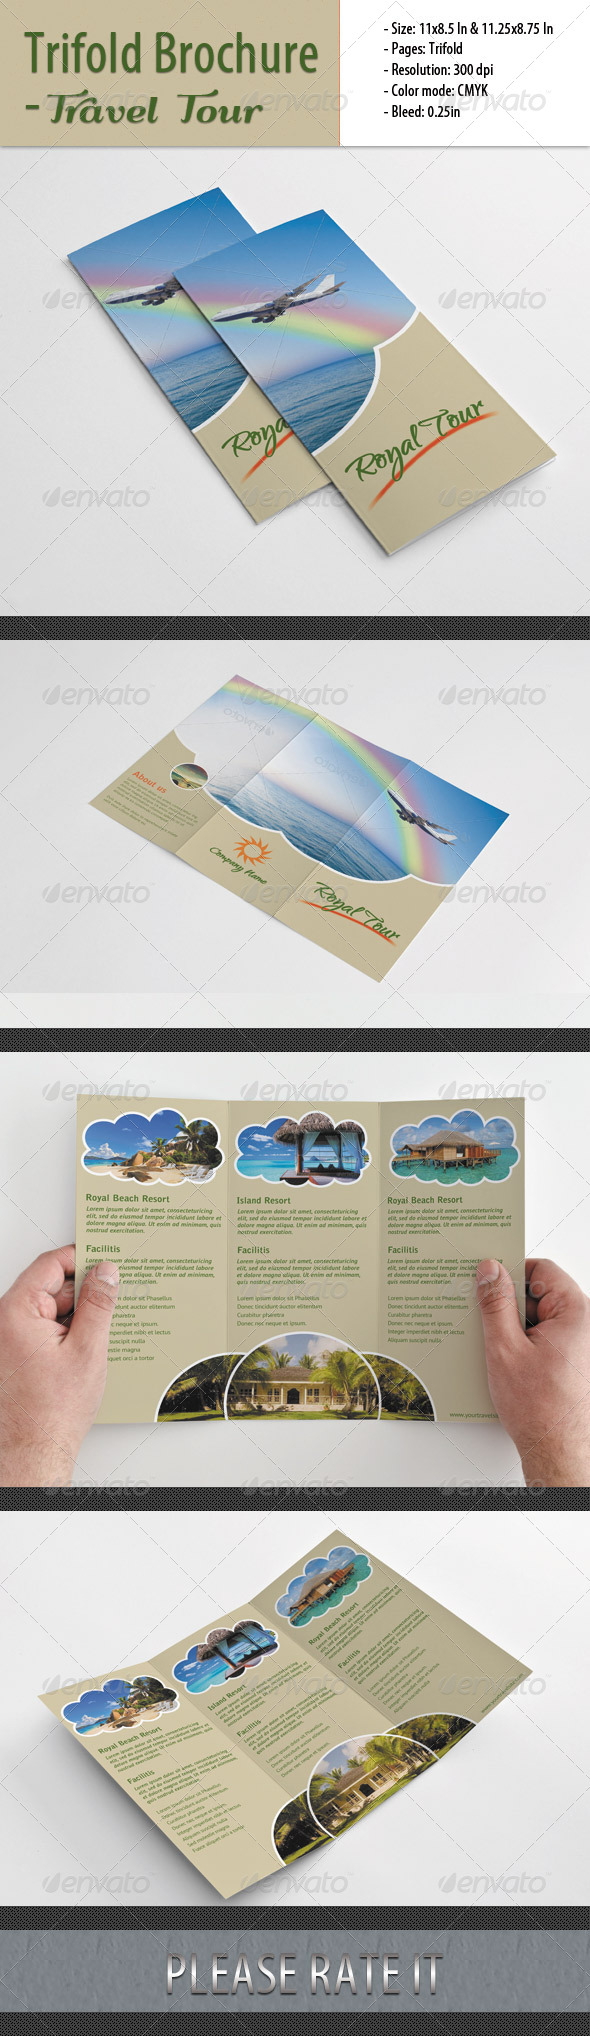 Trifold Brochure For Travel Tour